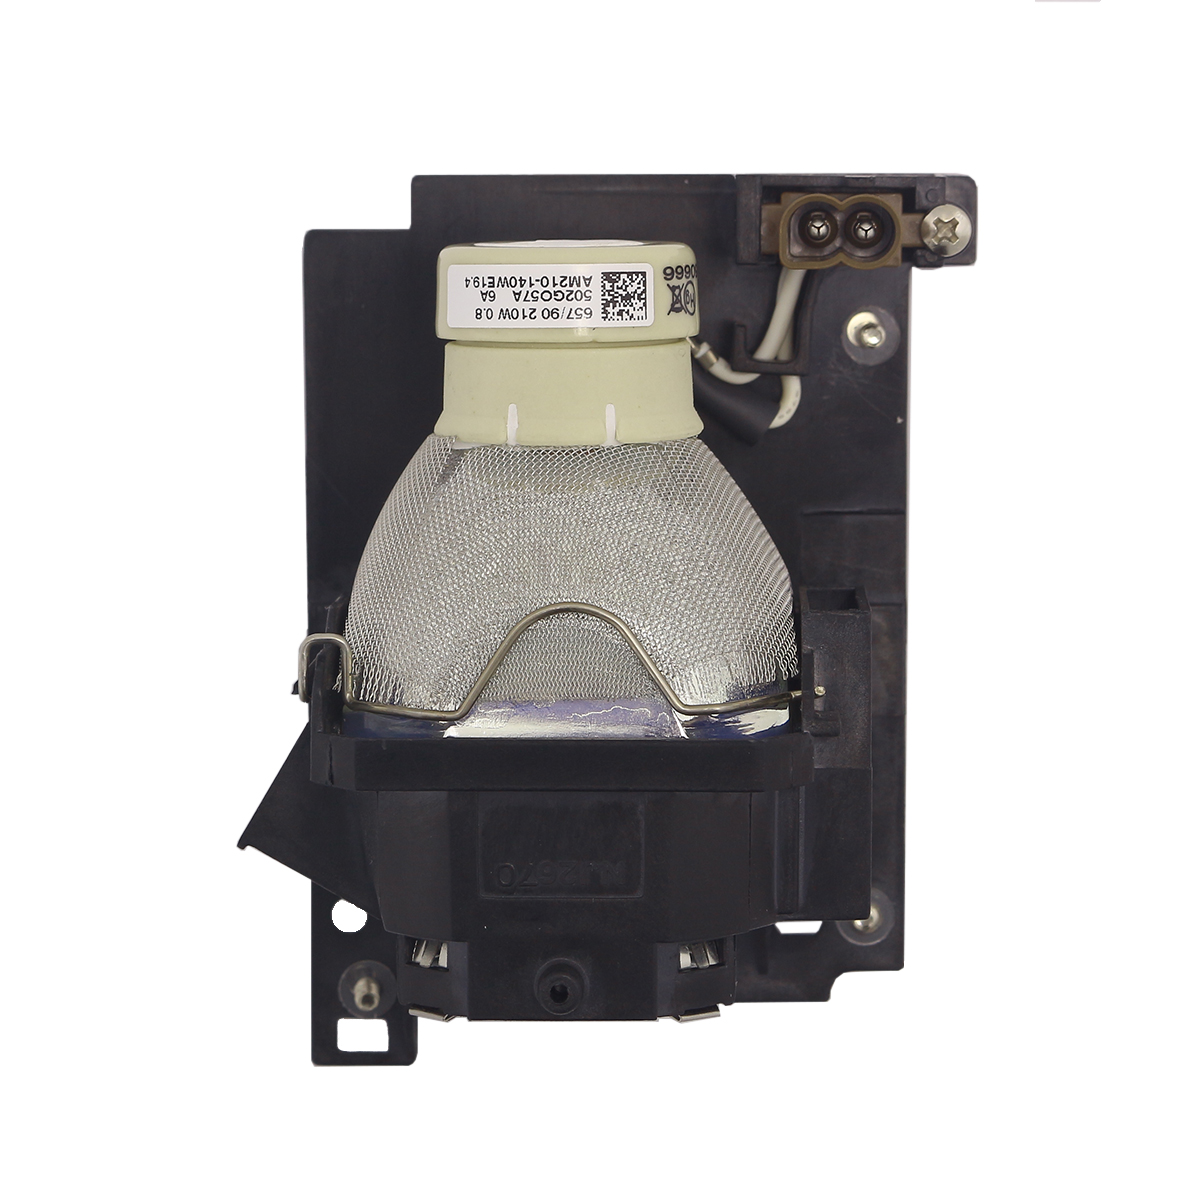 Lutema Economy Bulb for Dukane ImagePro 8924HW-RJ Projector (Lamp Only) - image 2 of 5